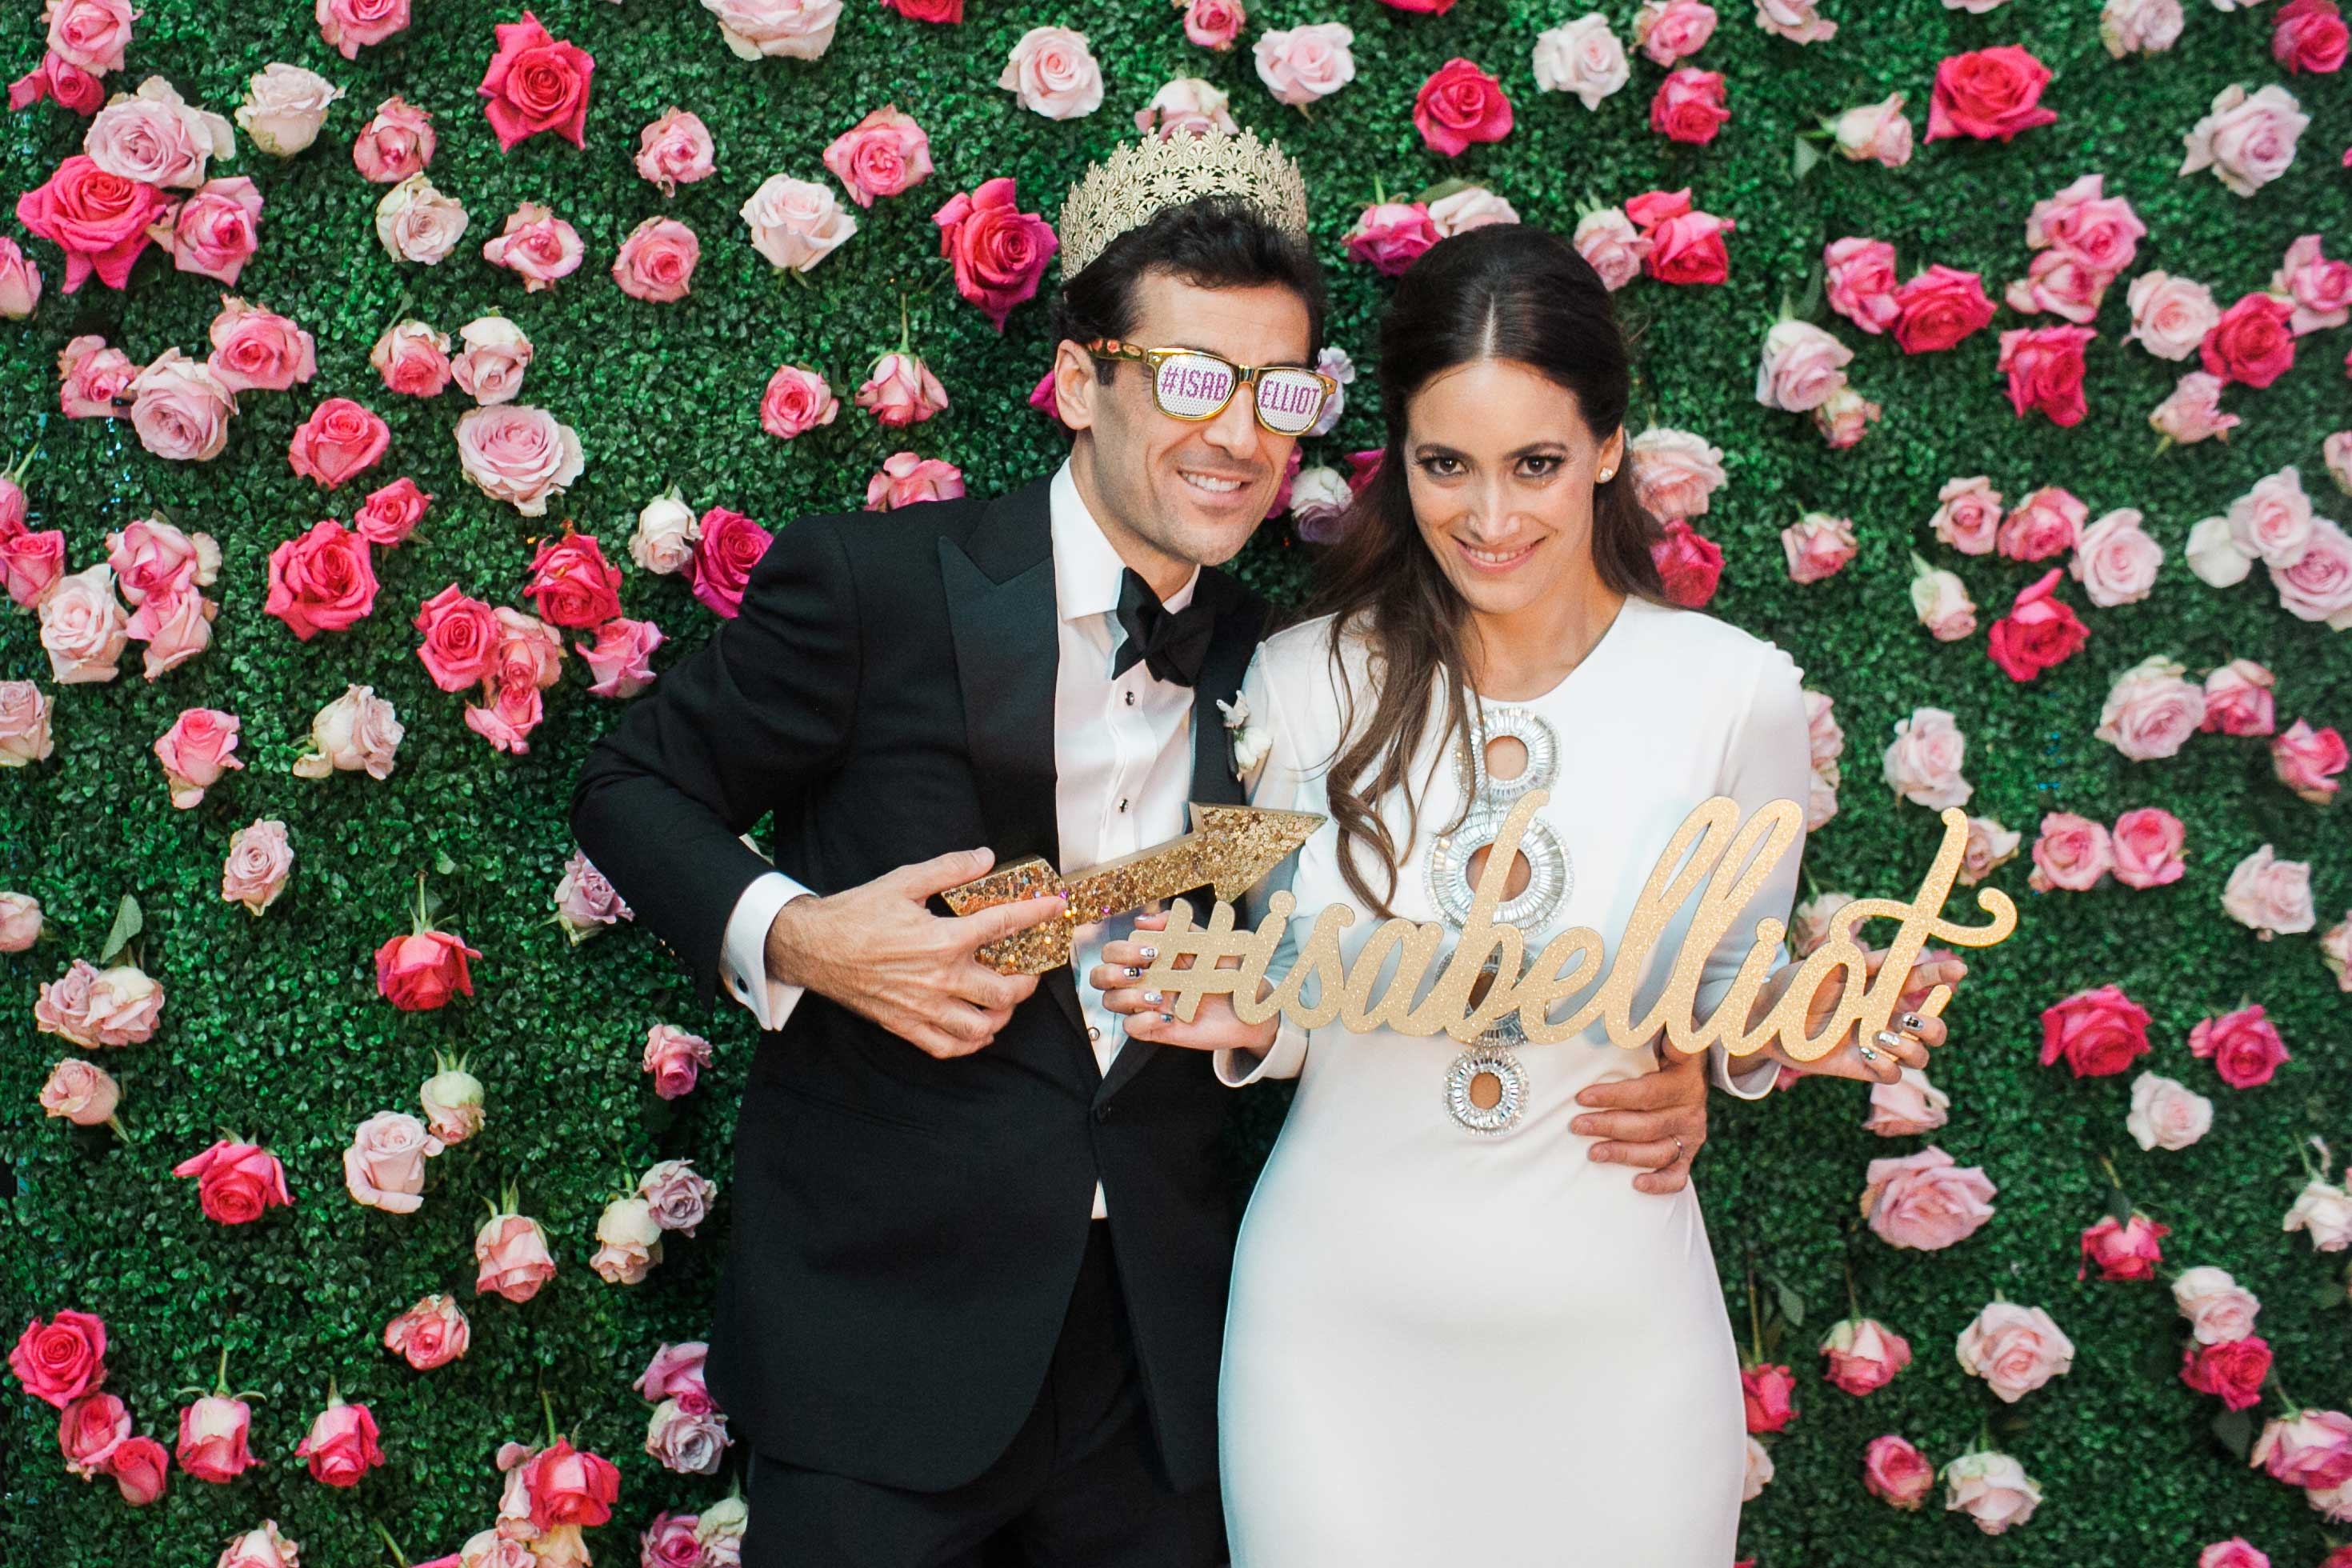 Bride and groom in front of flower wall photo booth backdrop